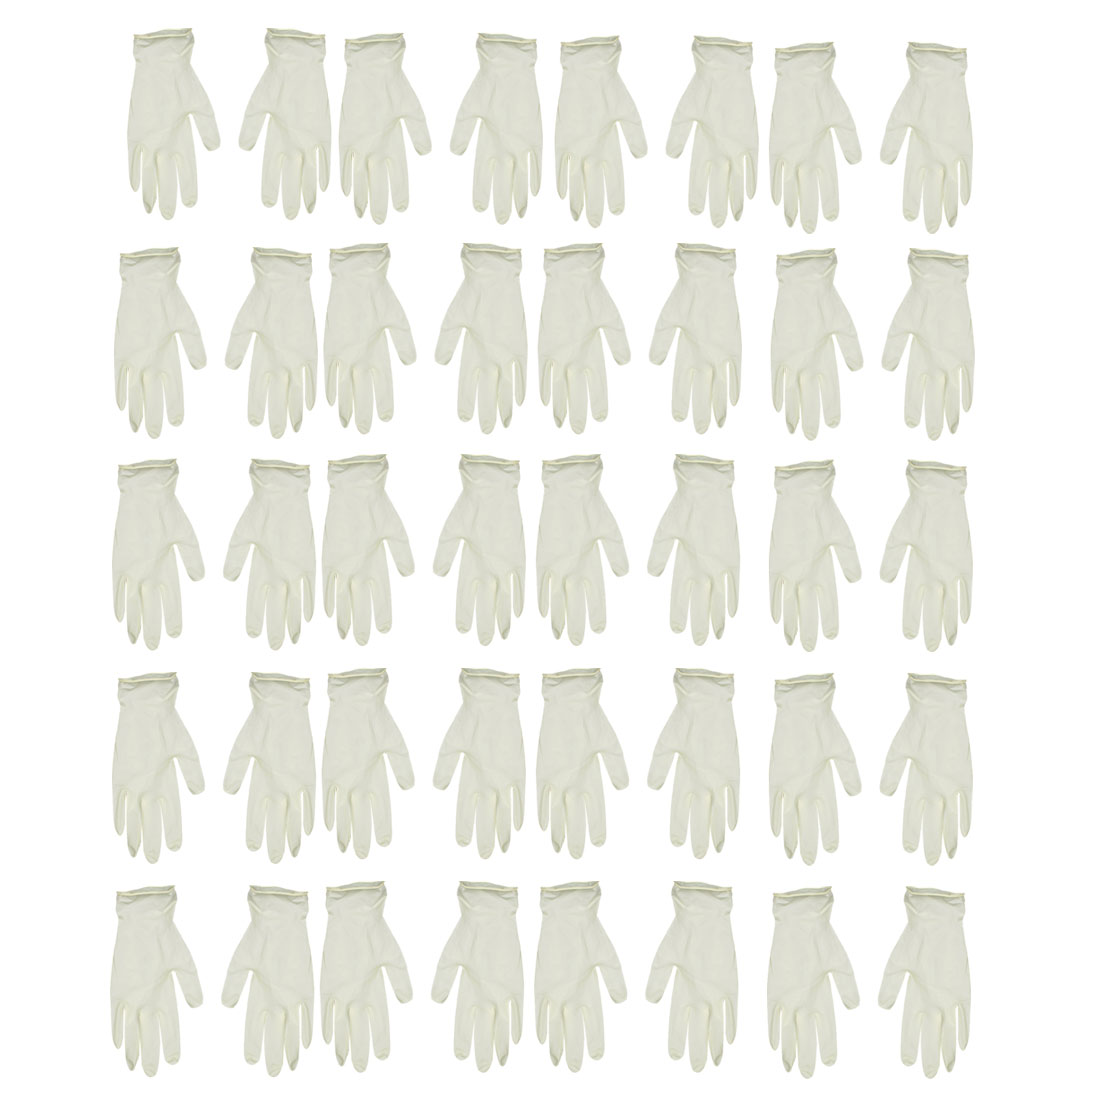 White Disposable Rubber Latex Gloves Powder Free Size Large 24 Pairs